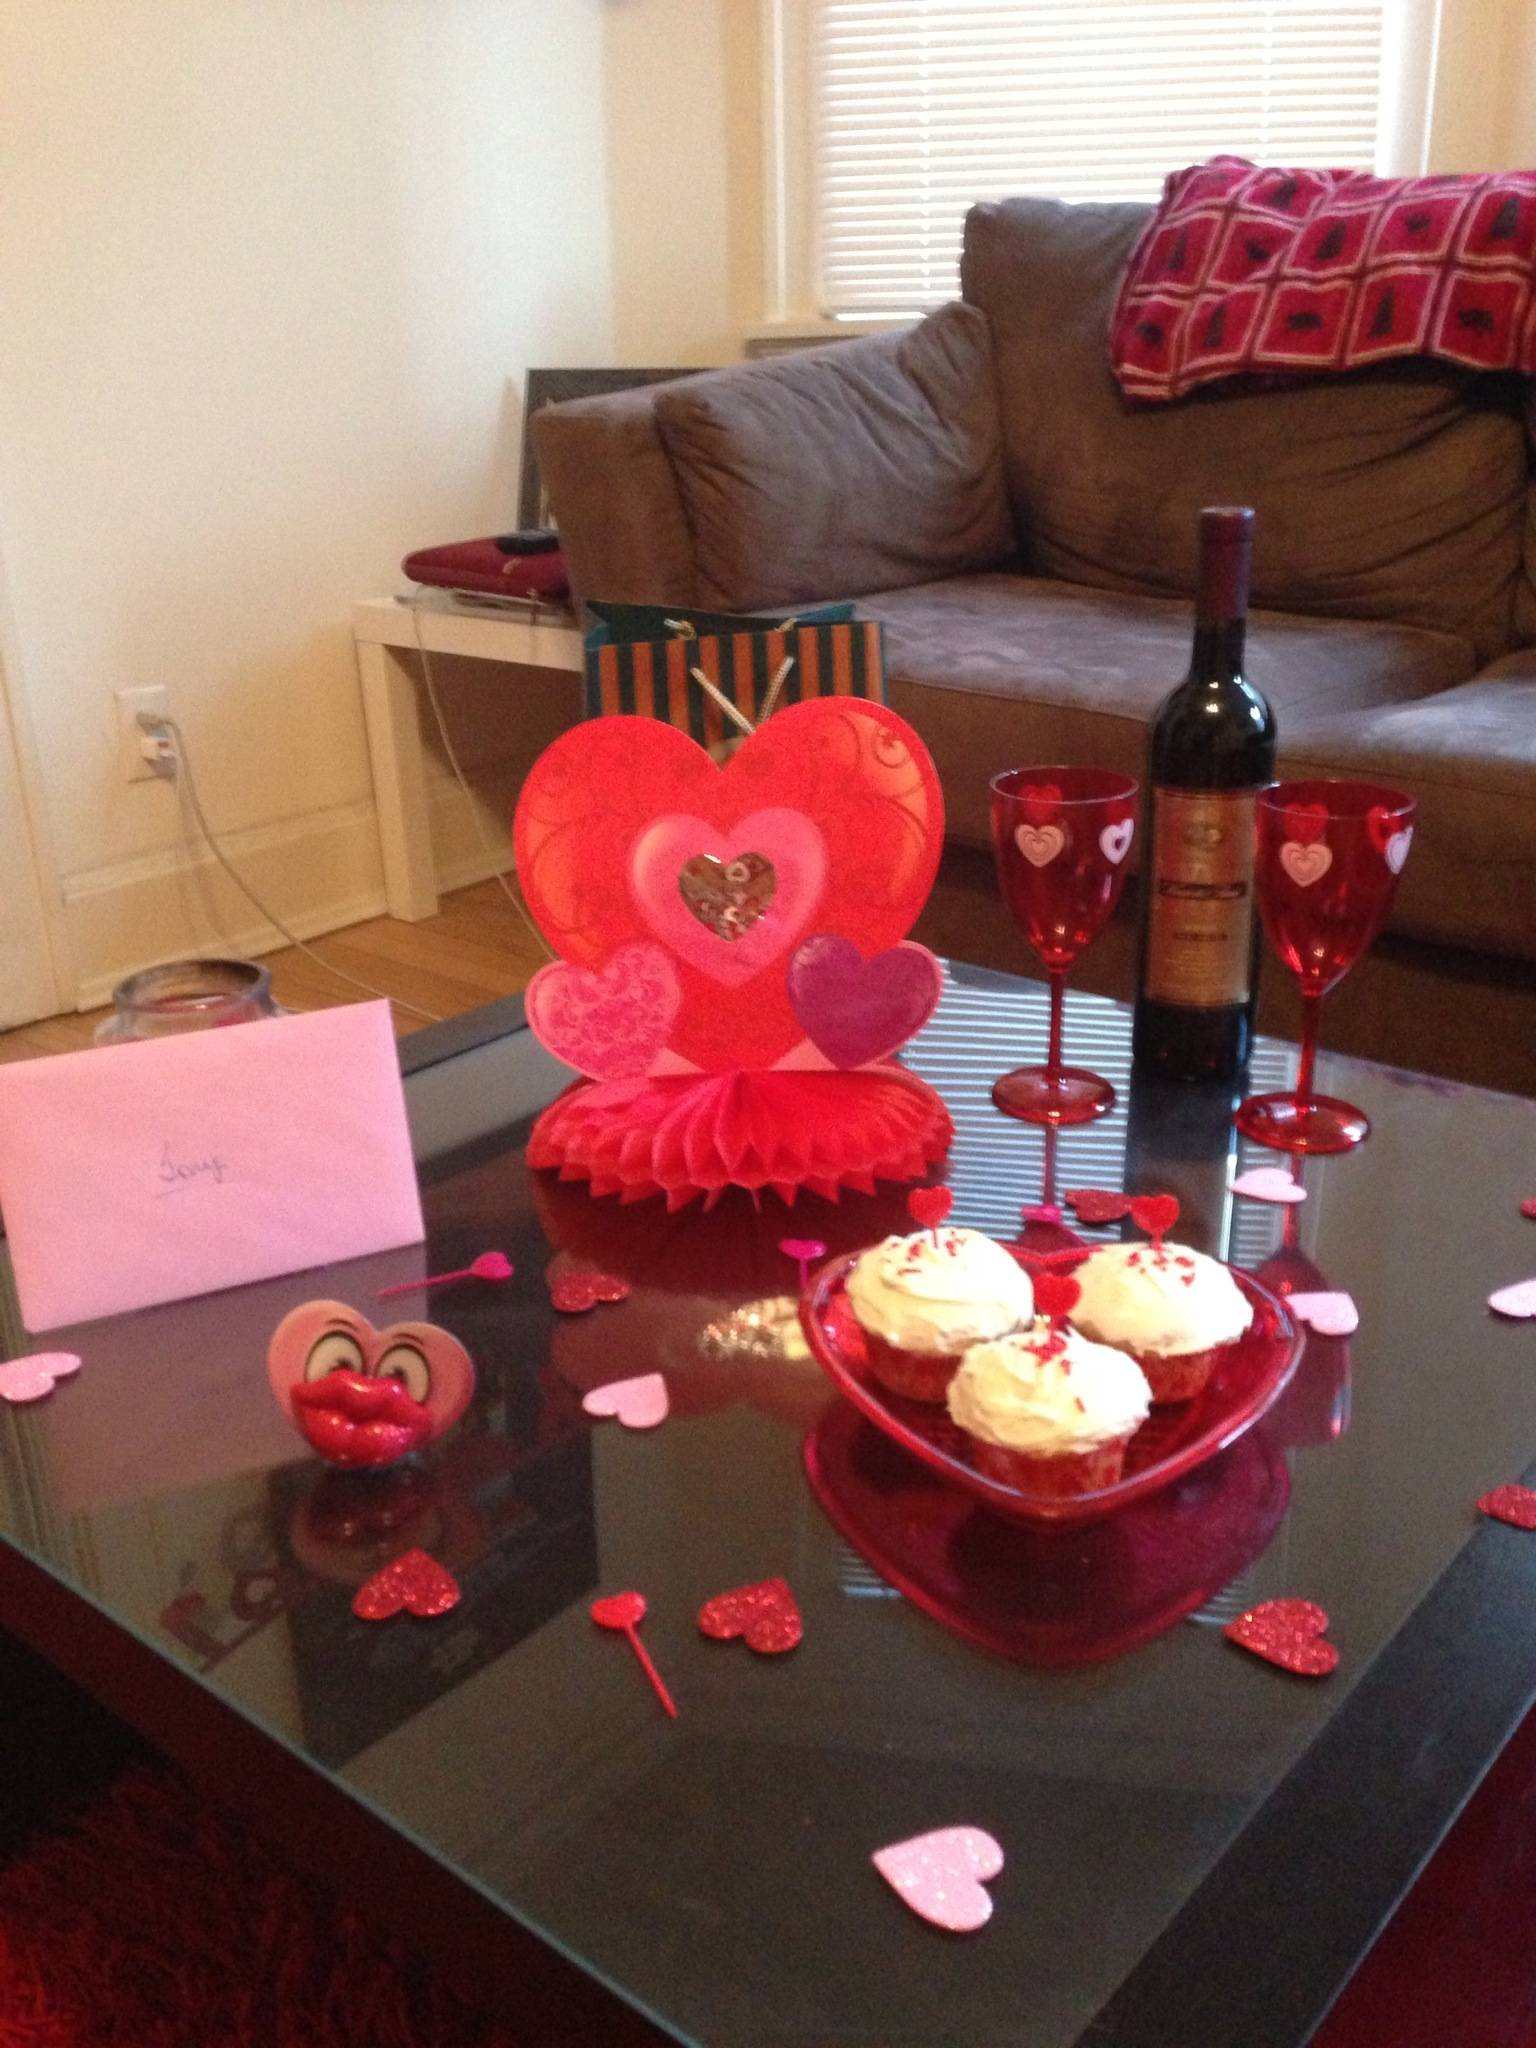 The Majestic Vision Valentines Day Decorations for Coffee Table